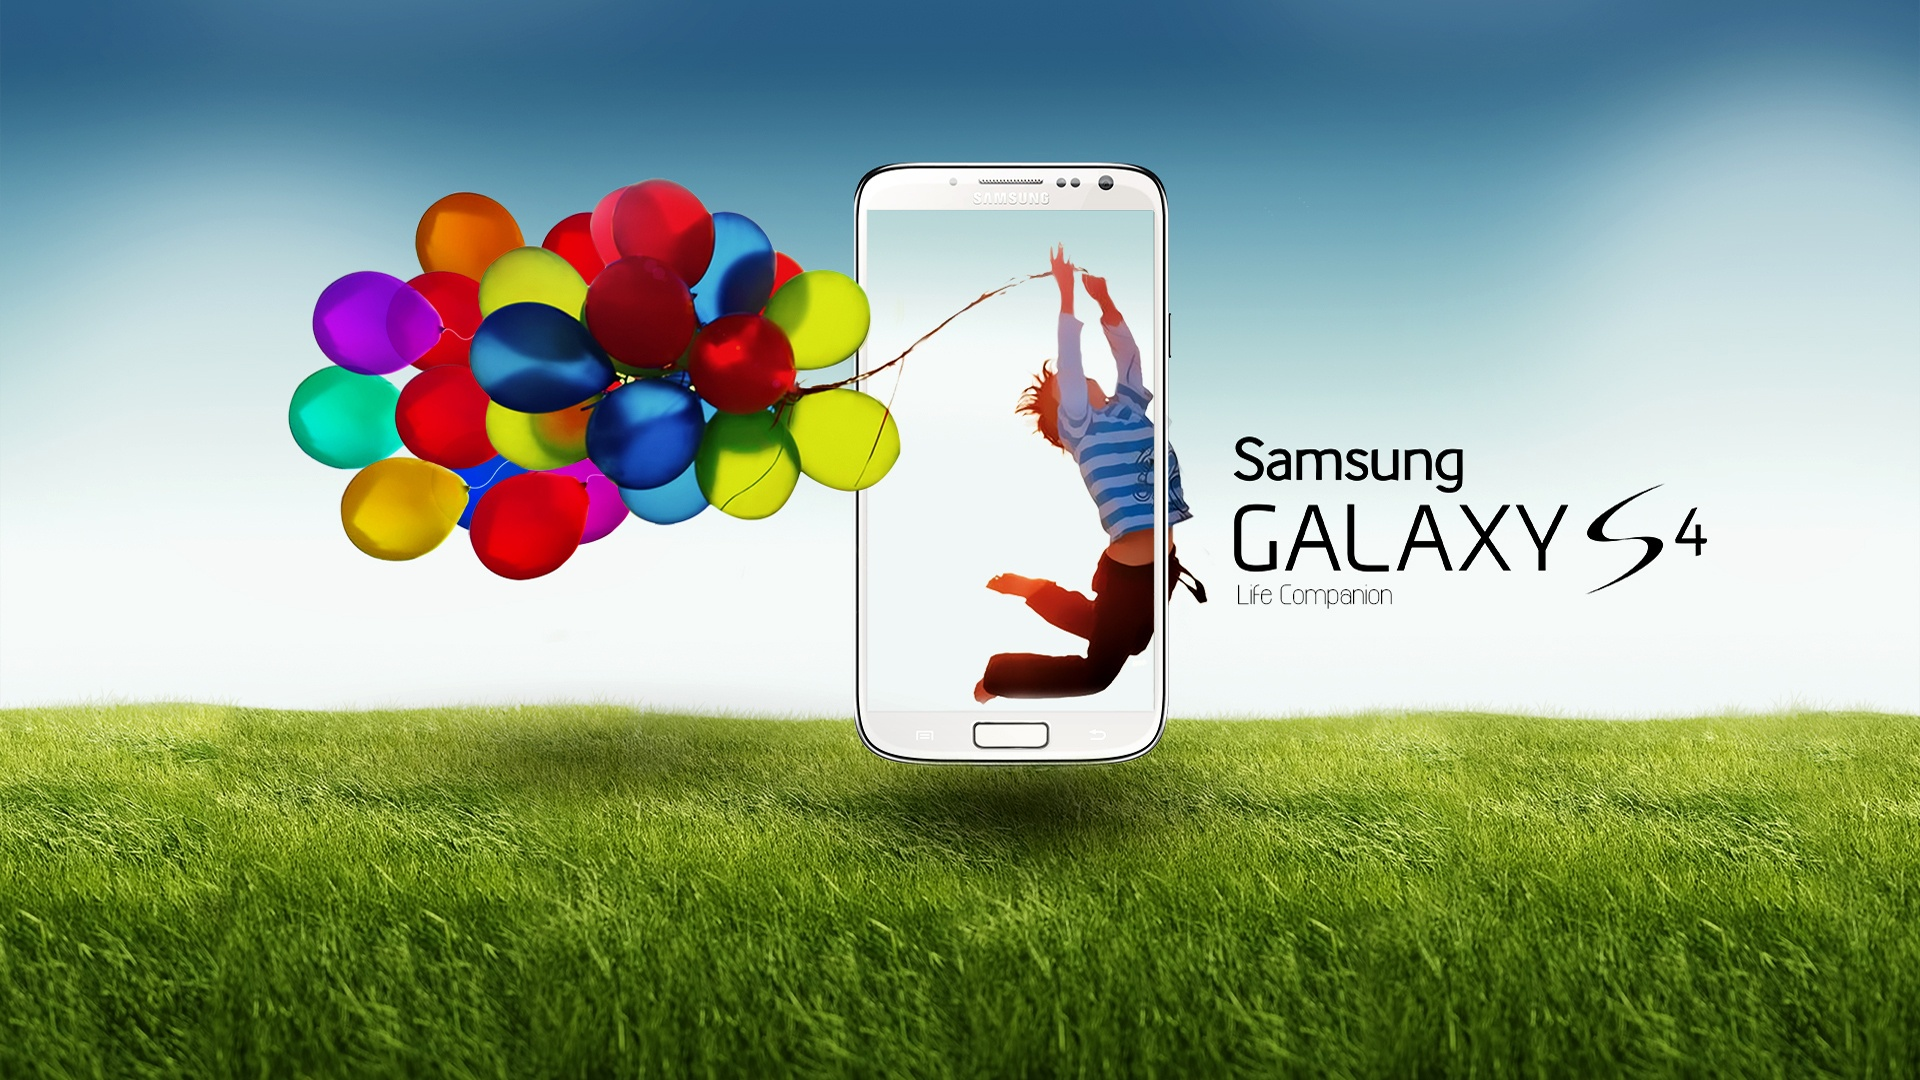 Samsung Galaxy S4 anuncios Fondos de pantalla | 1920x1080 ... Wallpaper Hd For Mobile Samsung Galaxy S4